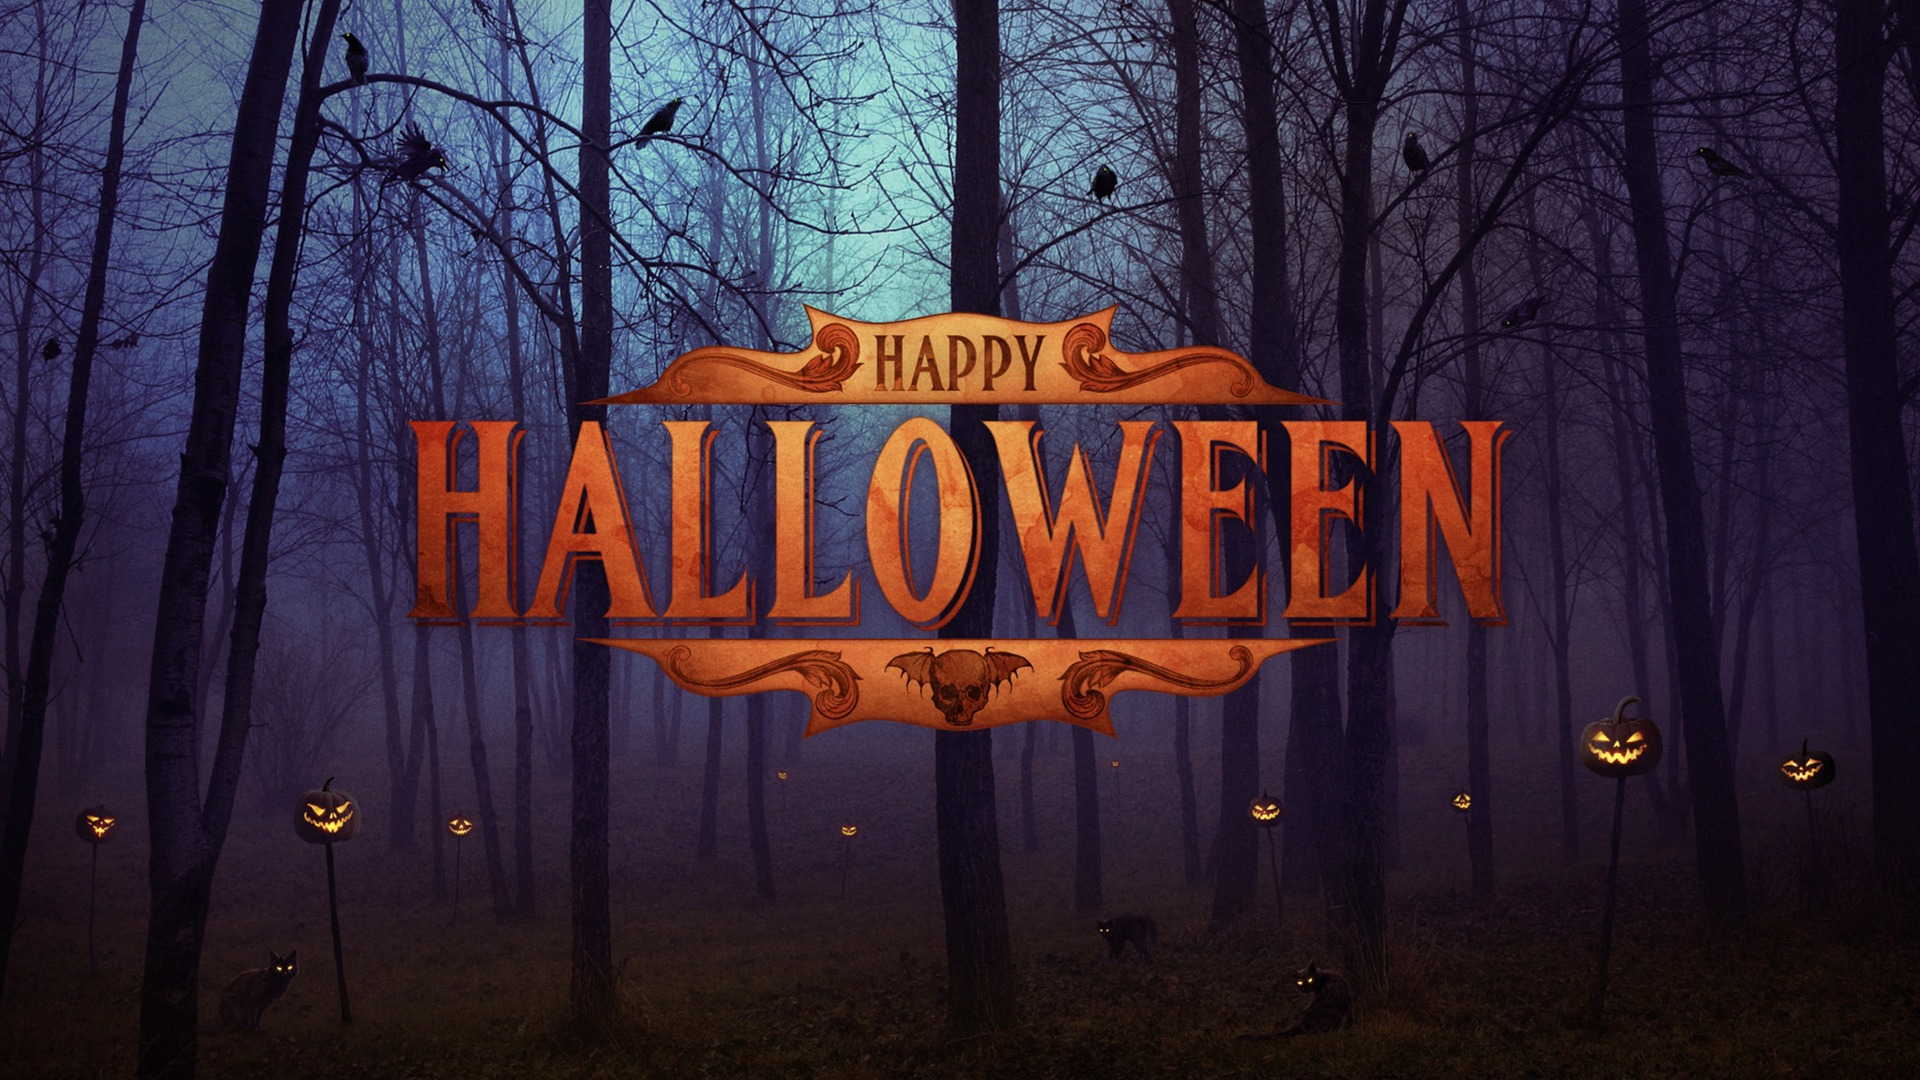 Happy Halloween Wallpaper 1920x1080